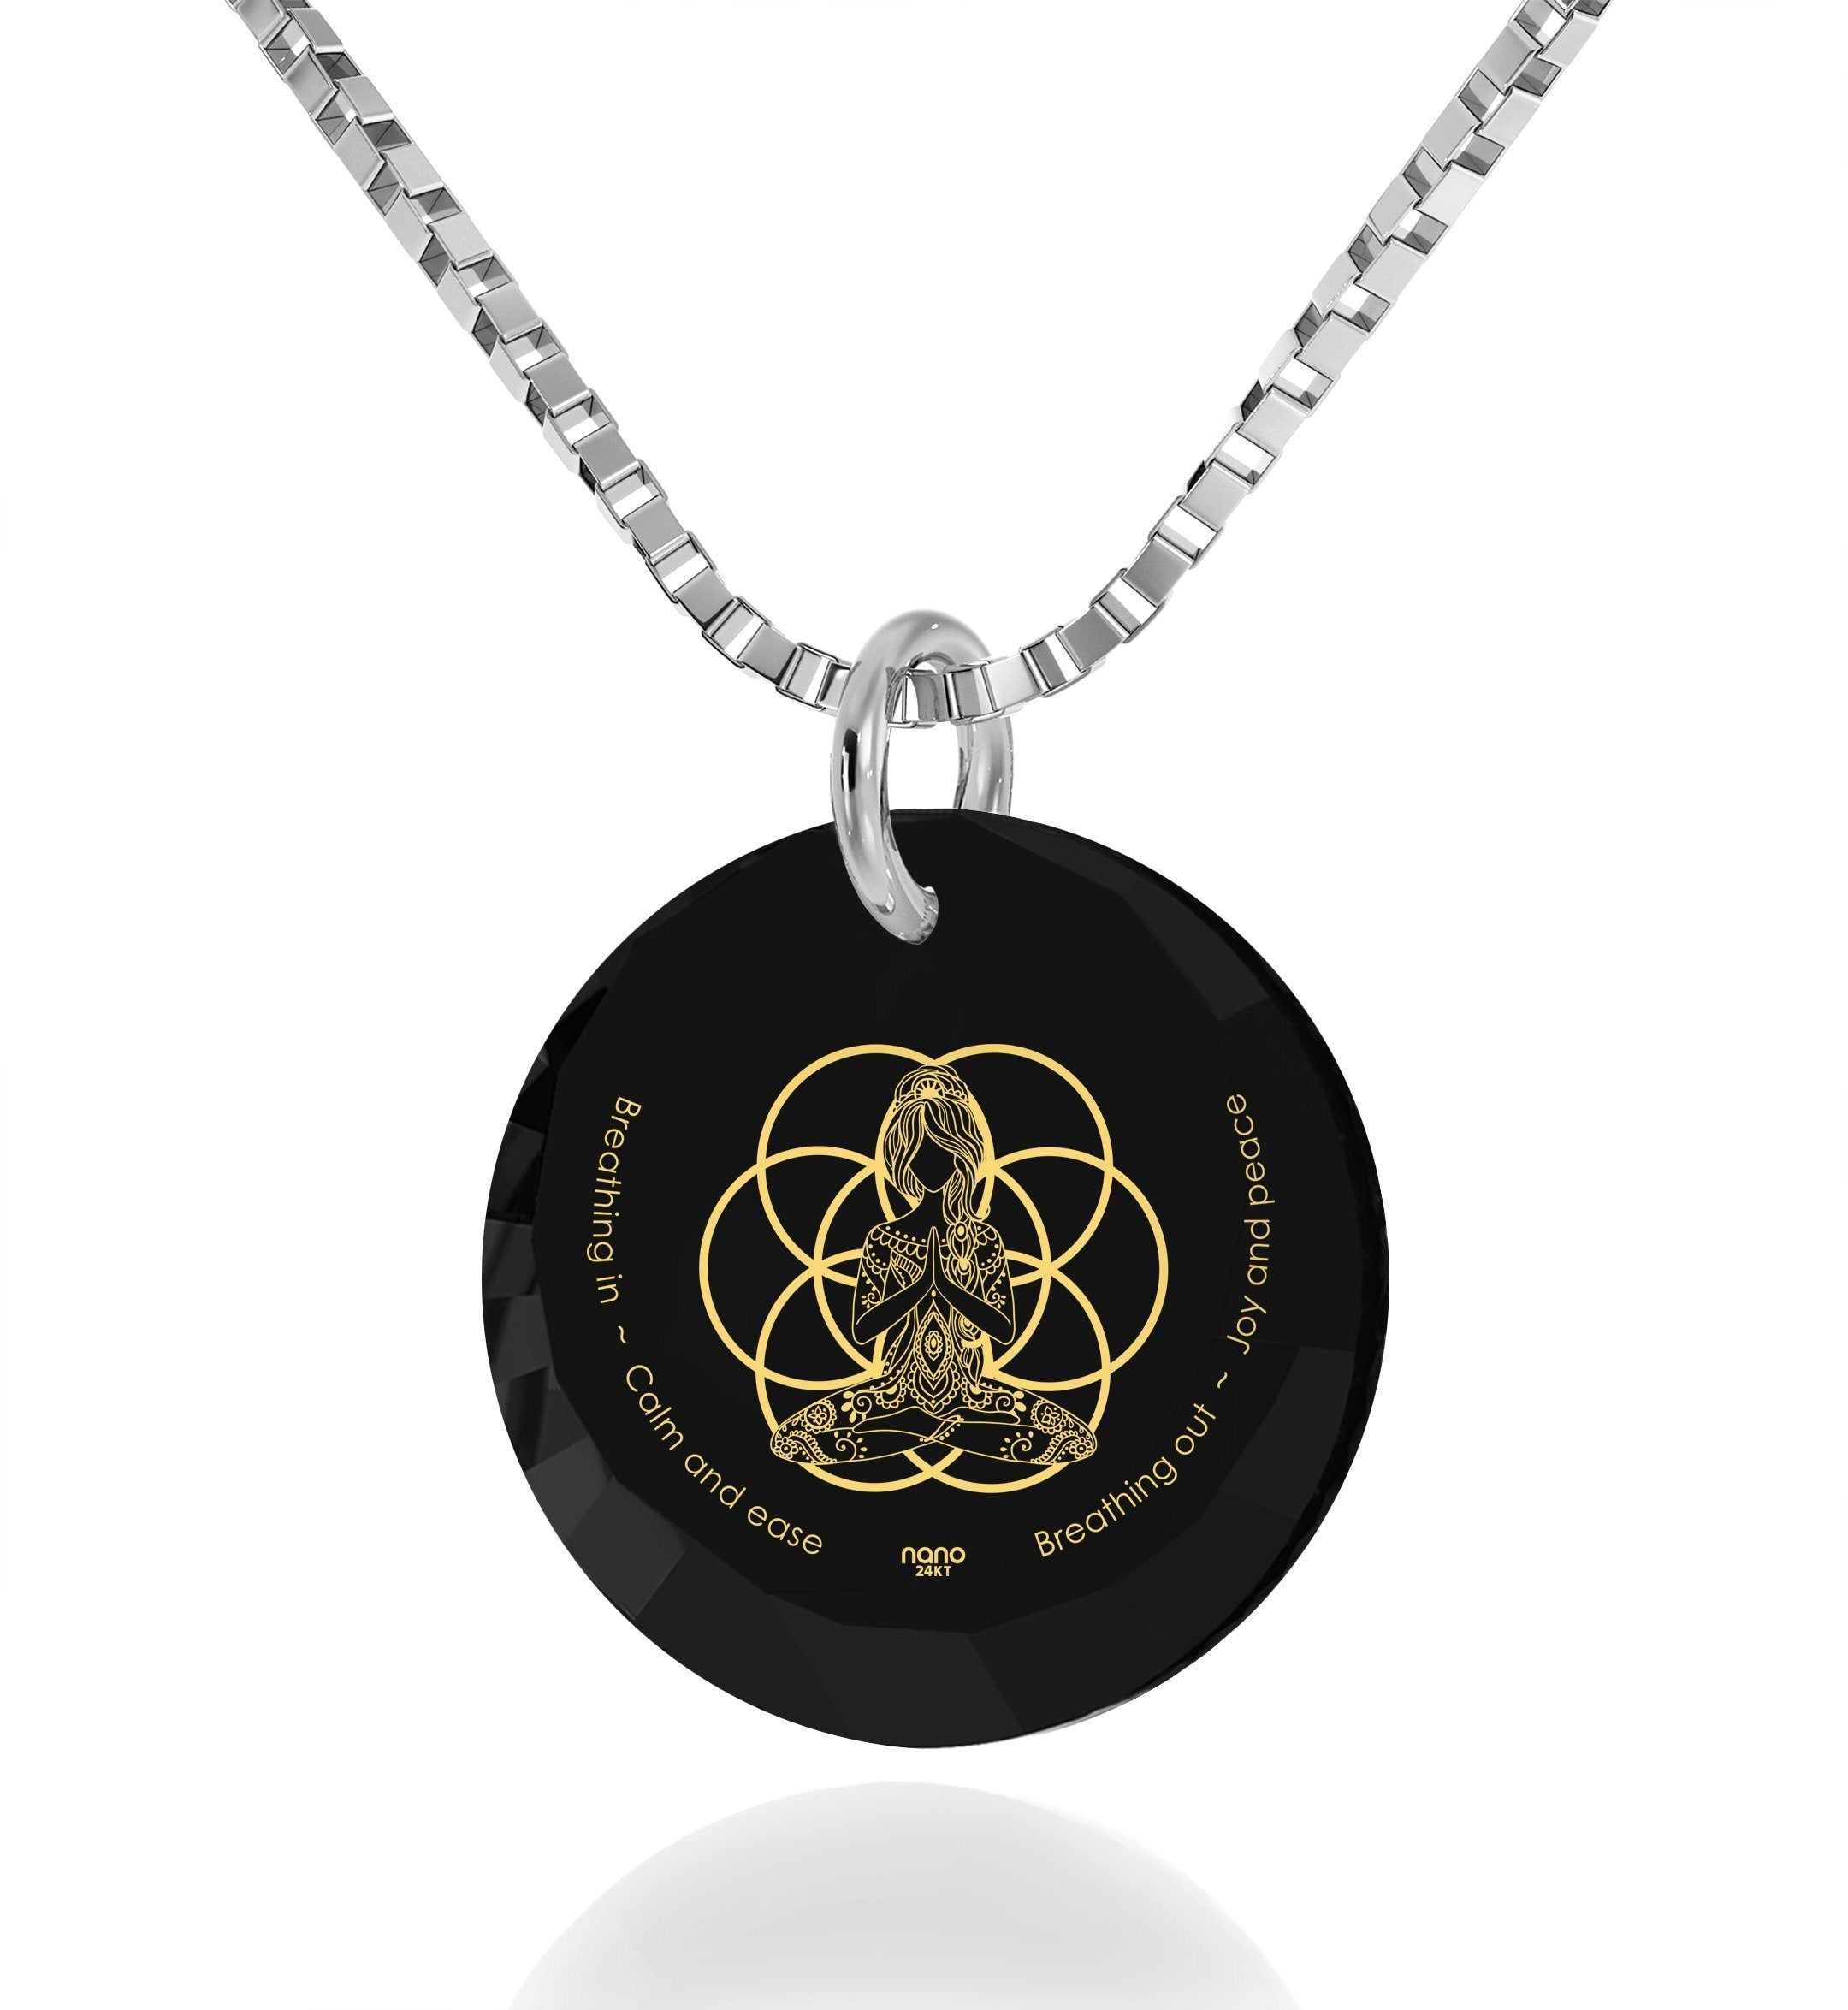 """Breathe in, Breathe out"" Engraved in 24k, Buddhist Jewellery with Black Onyx Stone, Gifts for Meditation, Nano Jewelry"